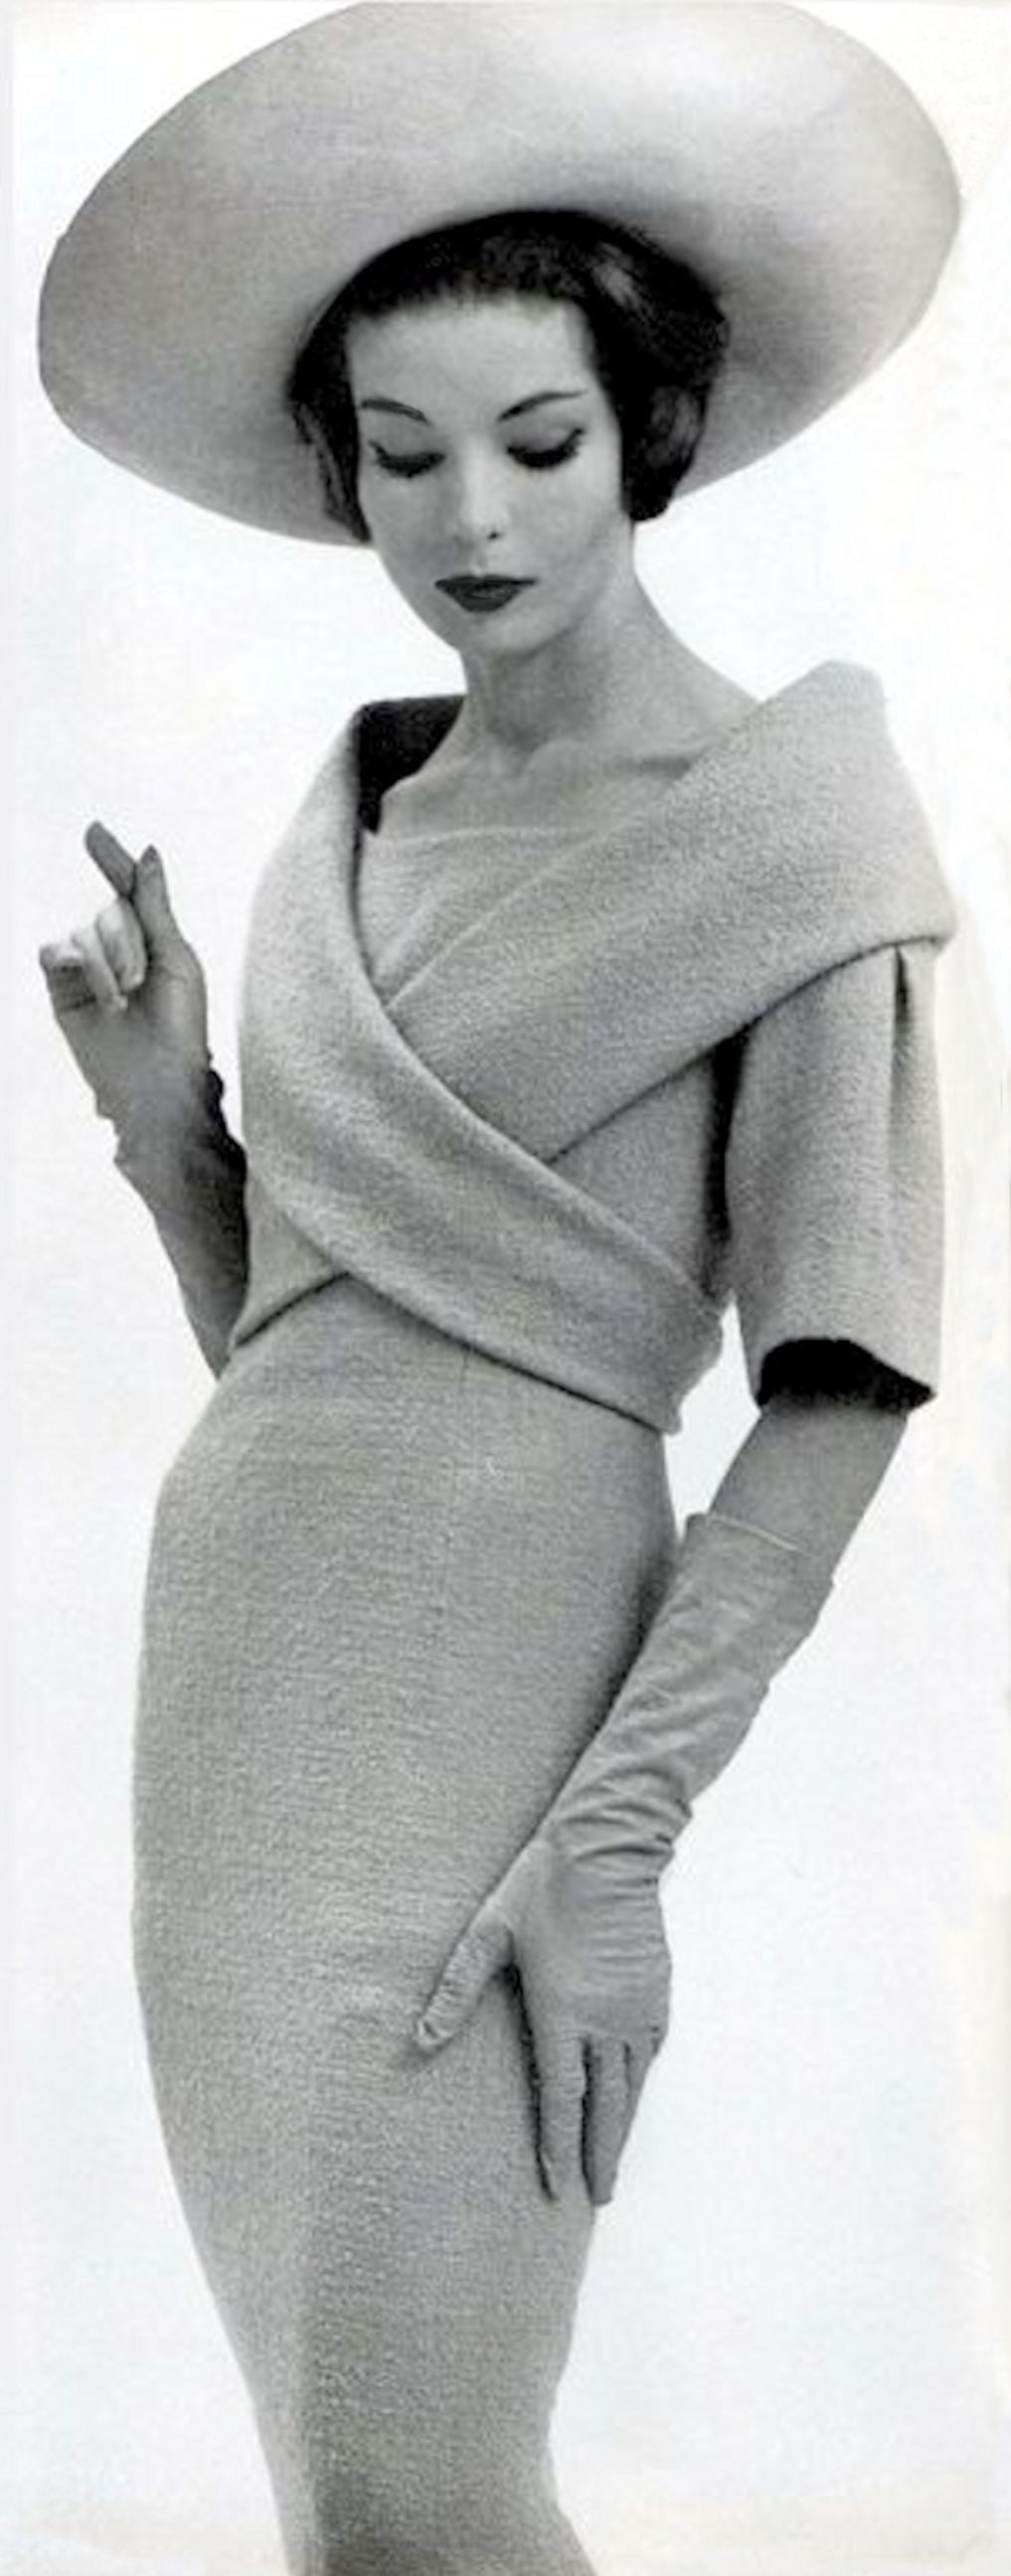 Pierre Cardin - 1959 - Shelt dress - L'Officiel